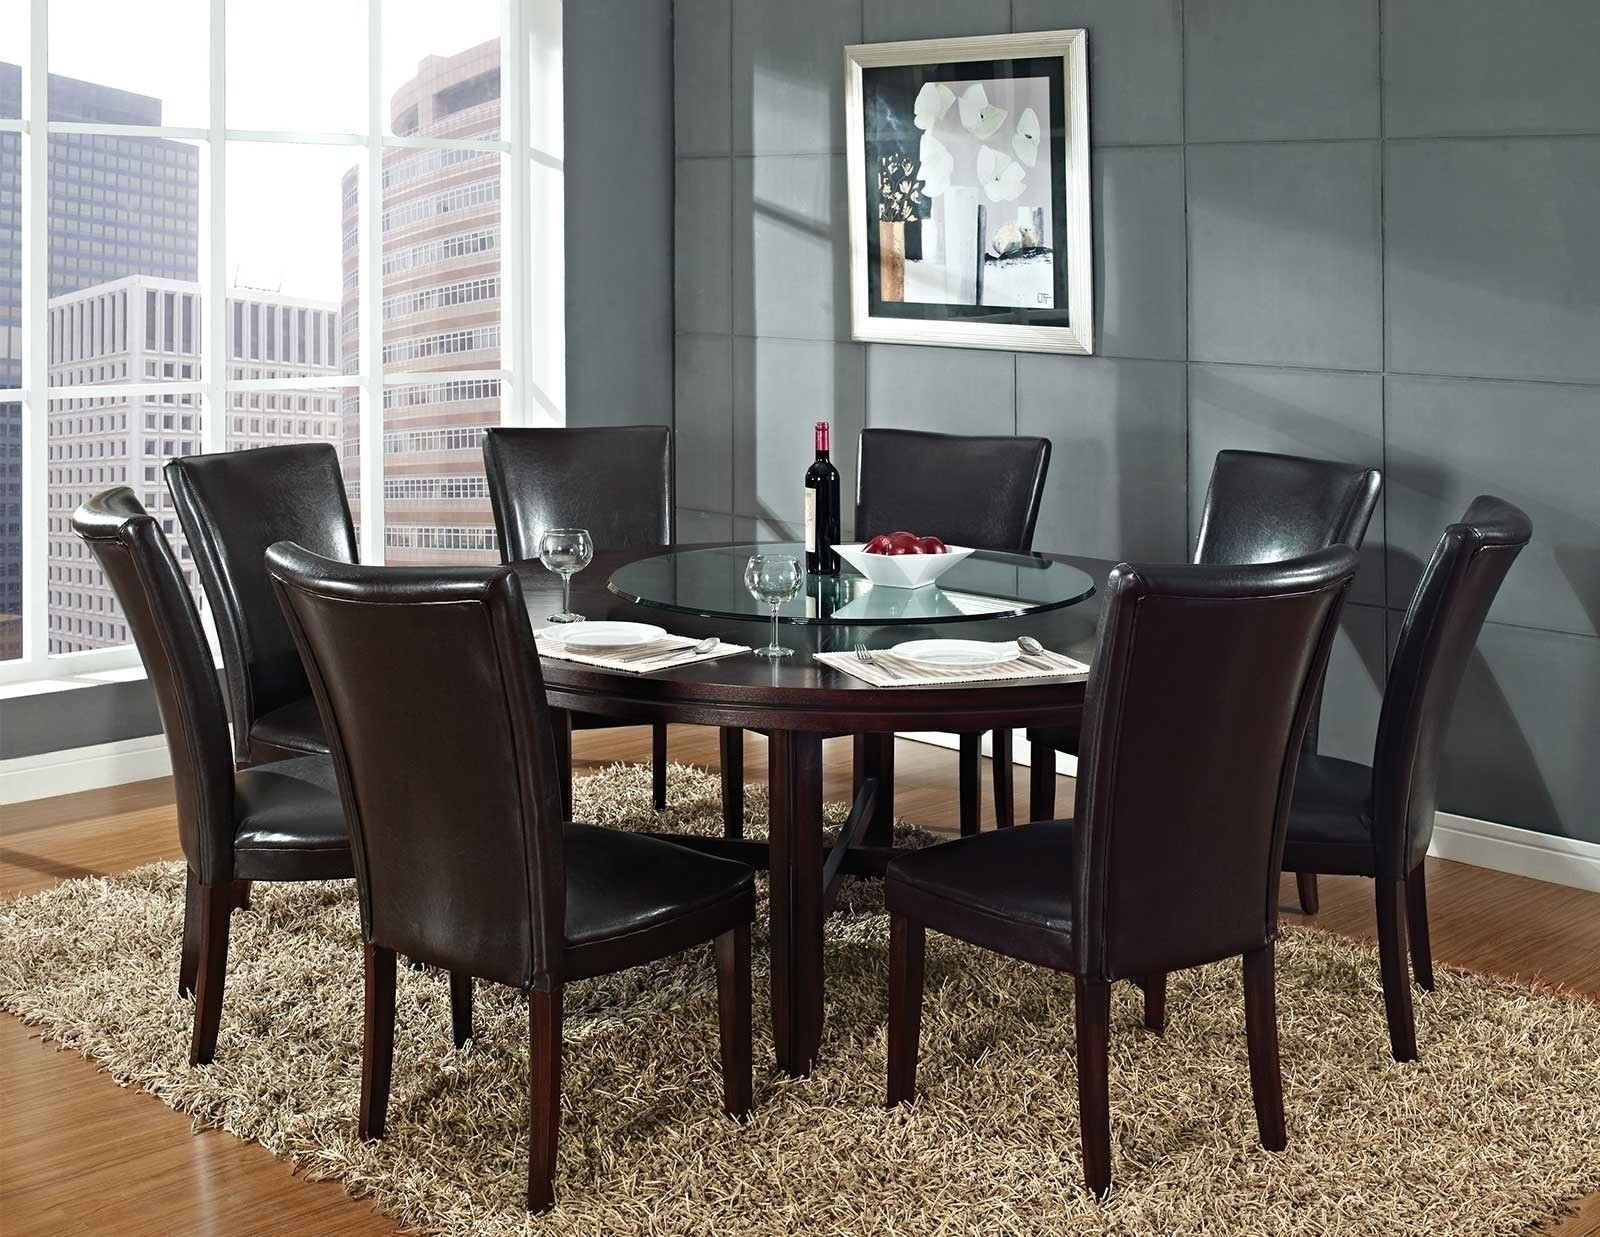 8 Seater Round Dining Table Sets • Table Setting Ideas Pertaining To Well Known 8 Seater Round Dining Table And Chairs (Gallery 11 of 25)